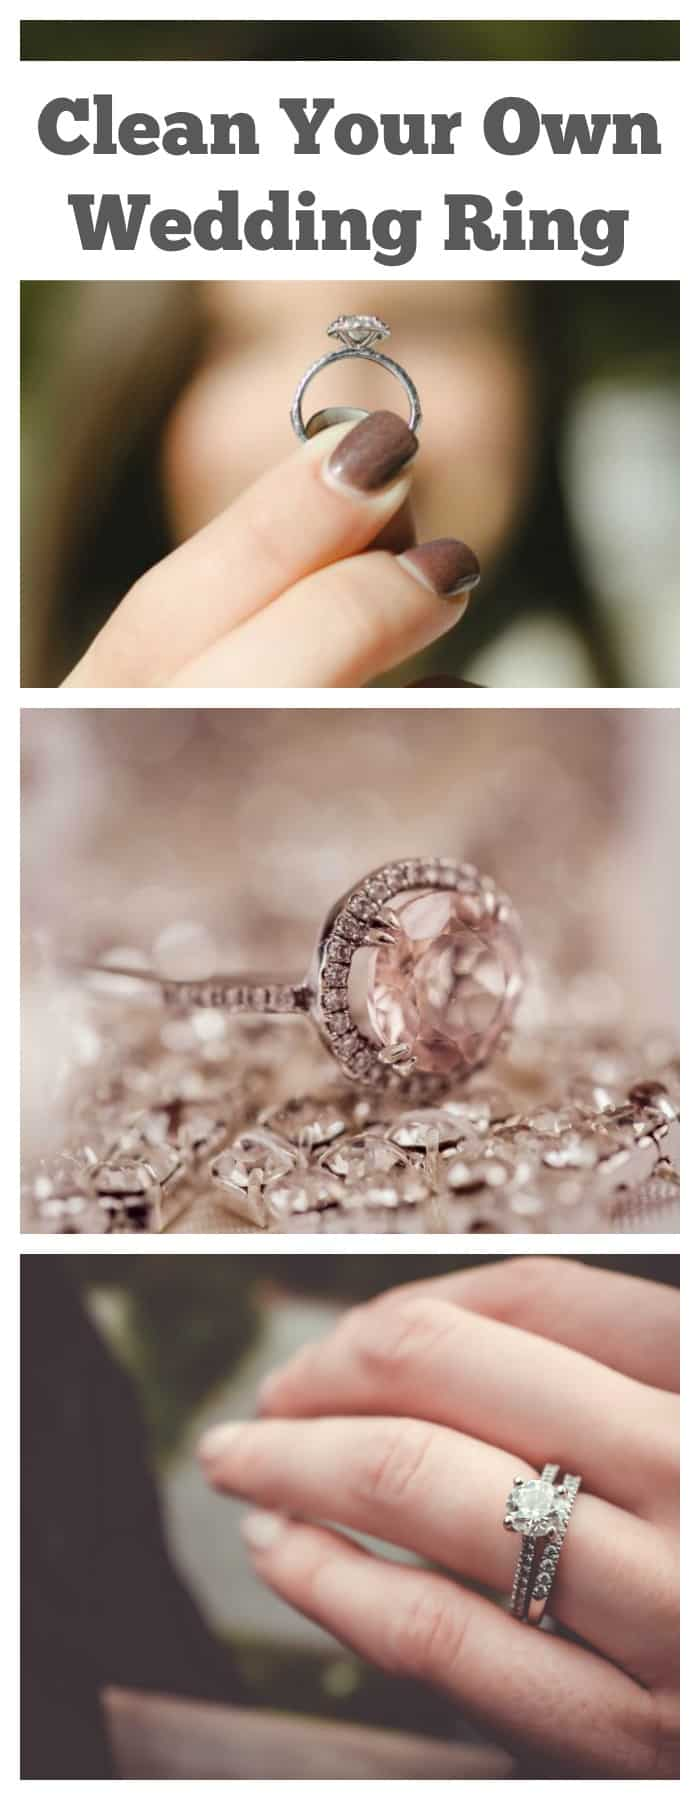 clean your own wedding ring